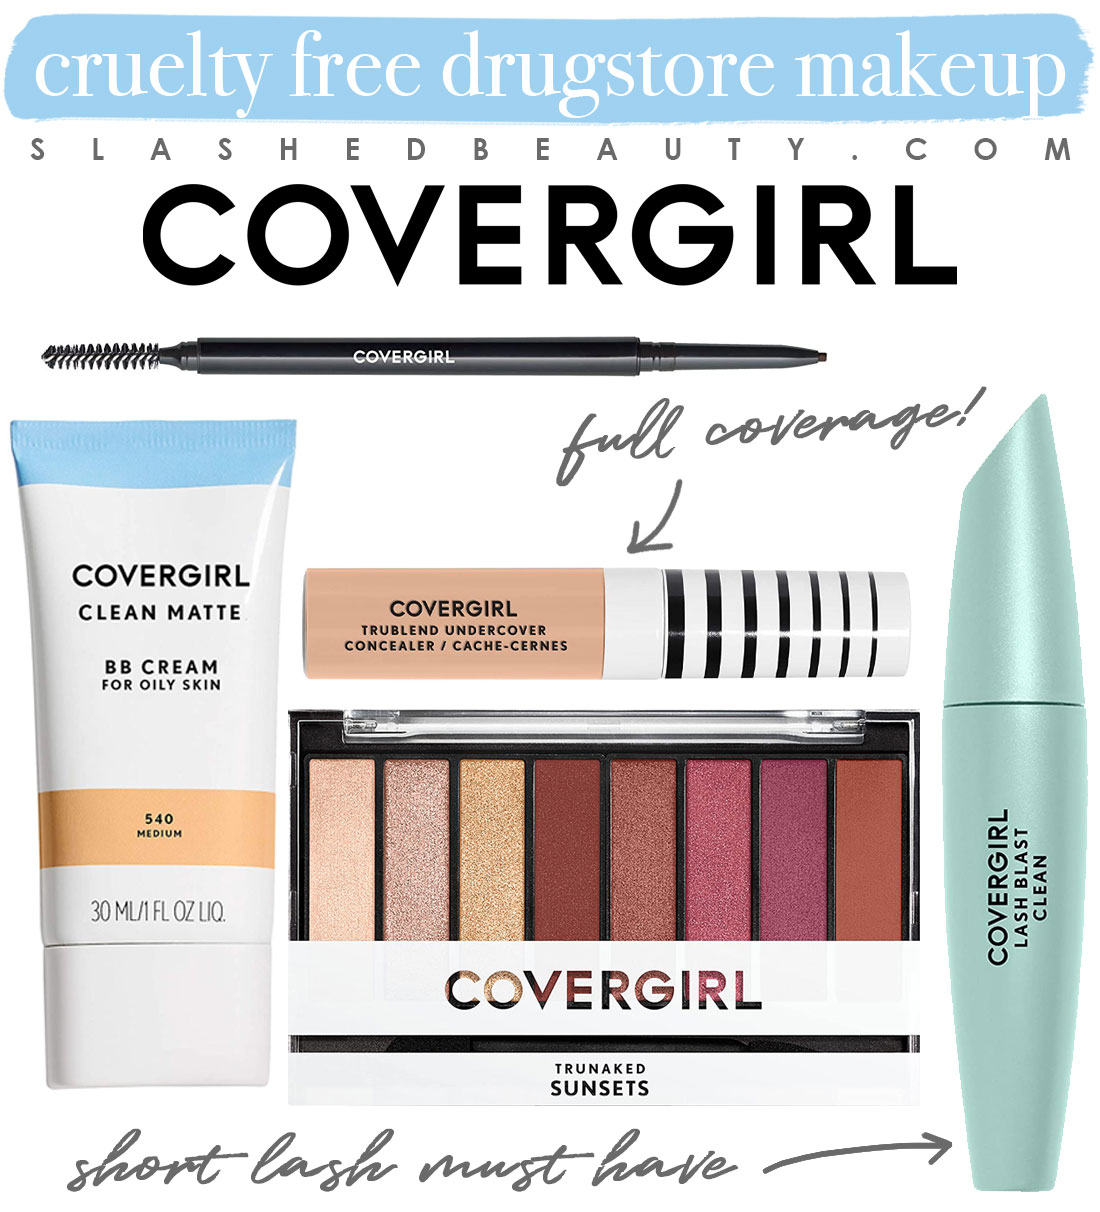 My 5 Favorite Cruelty Free Drugstore Makeup Brands   Covergirl Makeup Collage   Slashed Beauty